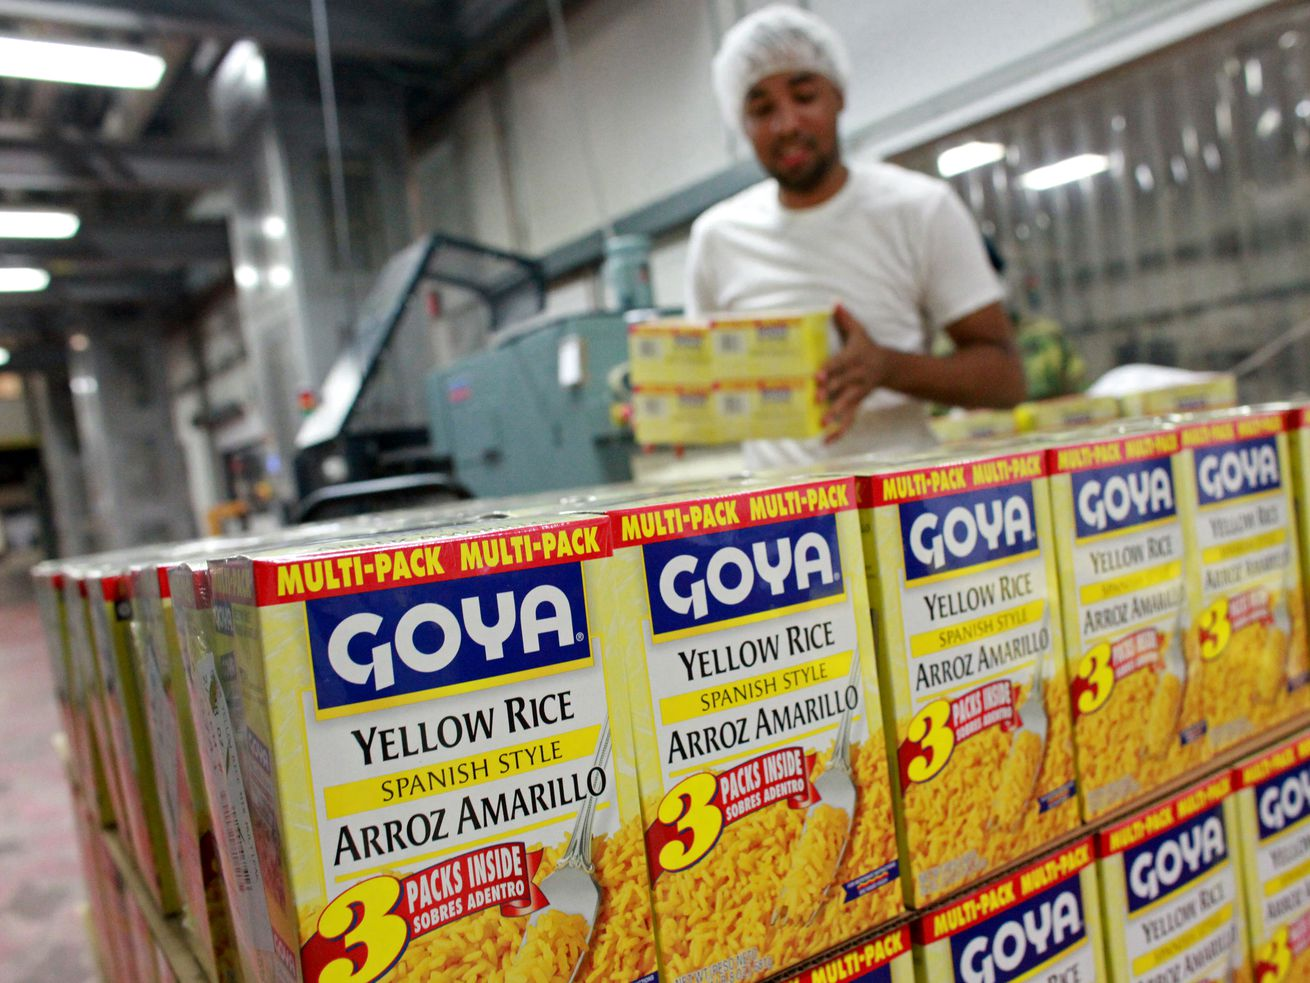 """A Black man in a hair net stacks yellow and blue boxes of Goya's """"Spanish Style"""" yellow rice on a pallet."""